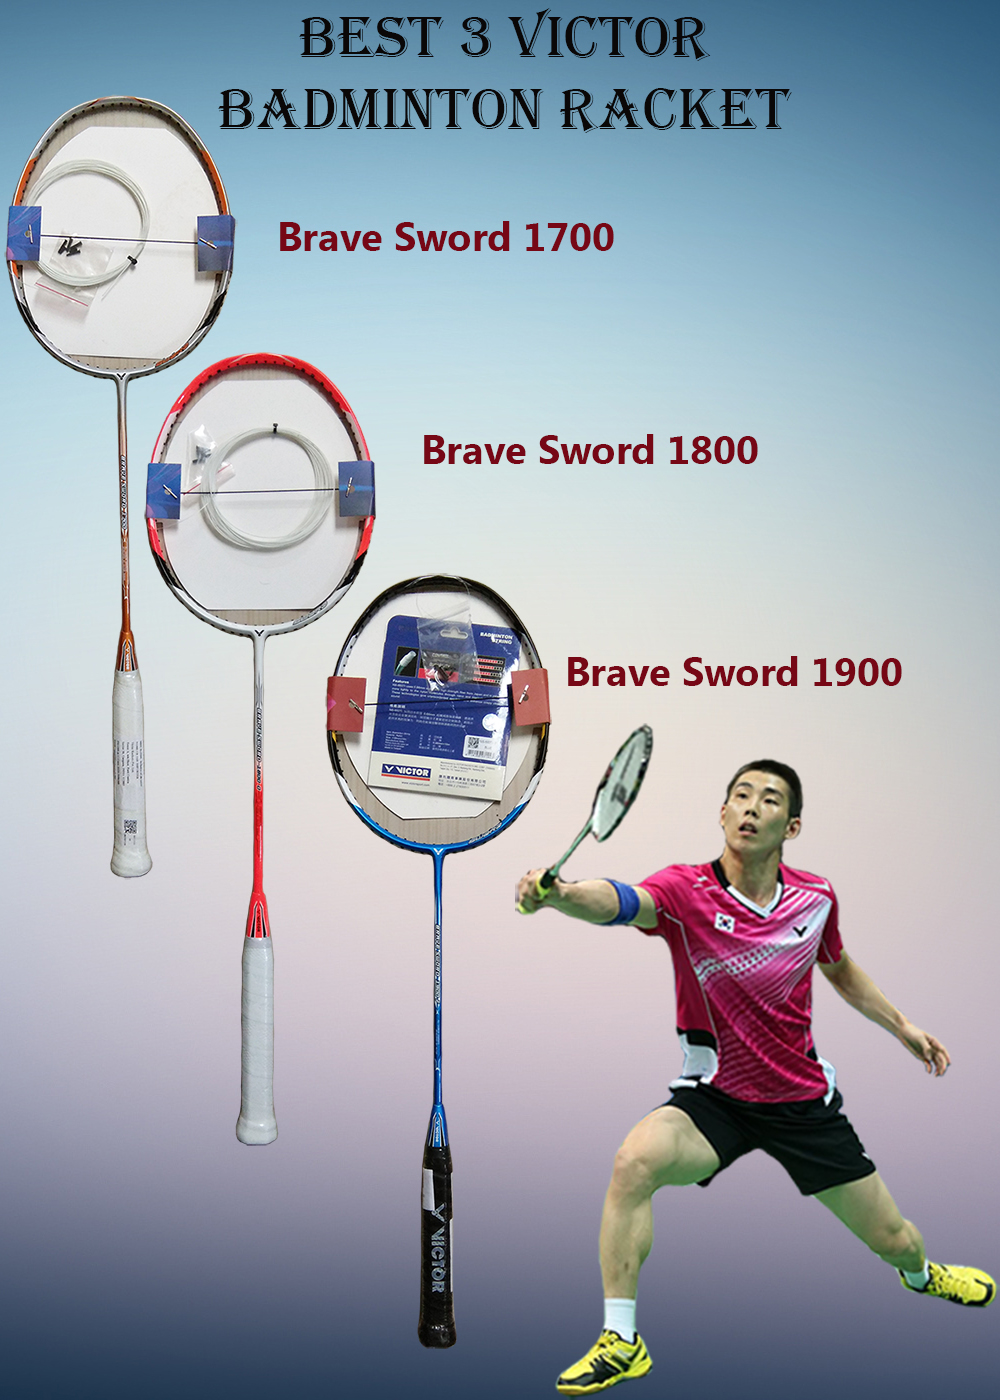 BEST 3 VICTOR BADMINTON RACKET